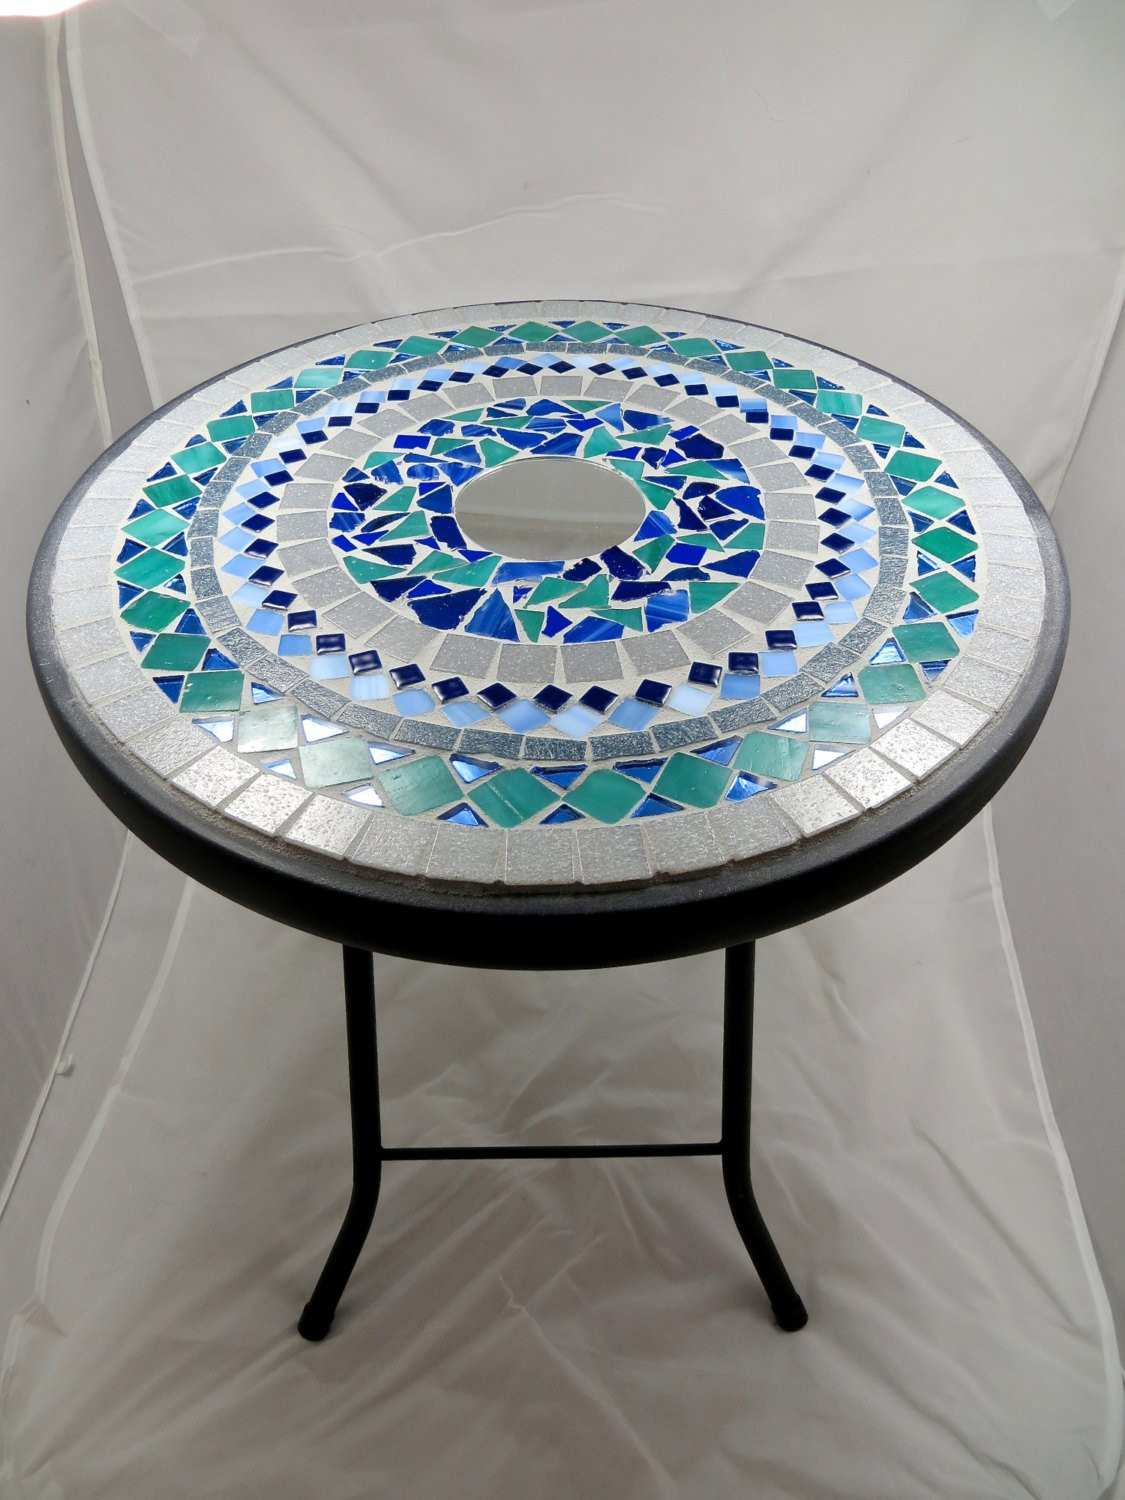 wonderful mosaic outdoor side table for moroccan tile luxurious round plant stand reserved wendy accent lamps plus tables antique gold console ethan allen leather furniture